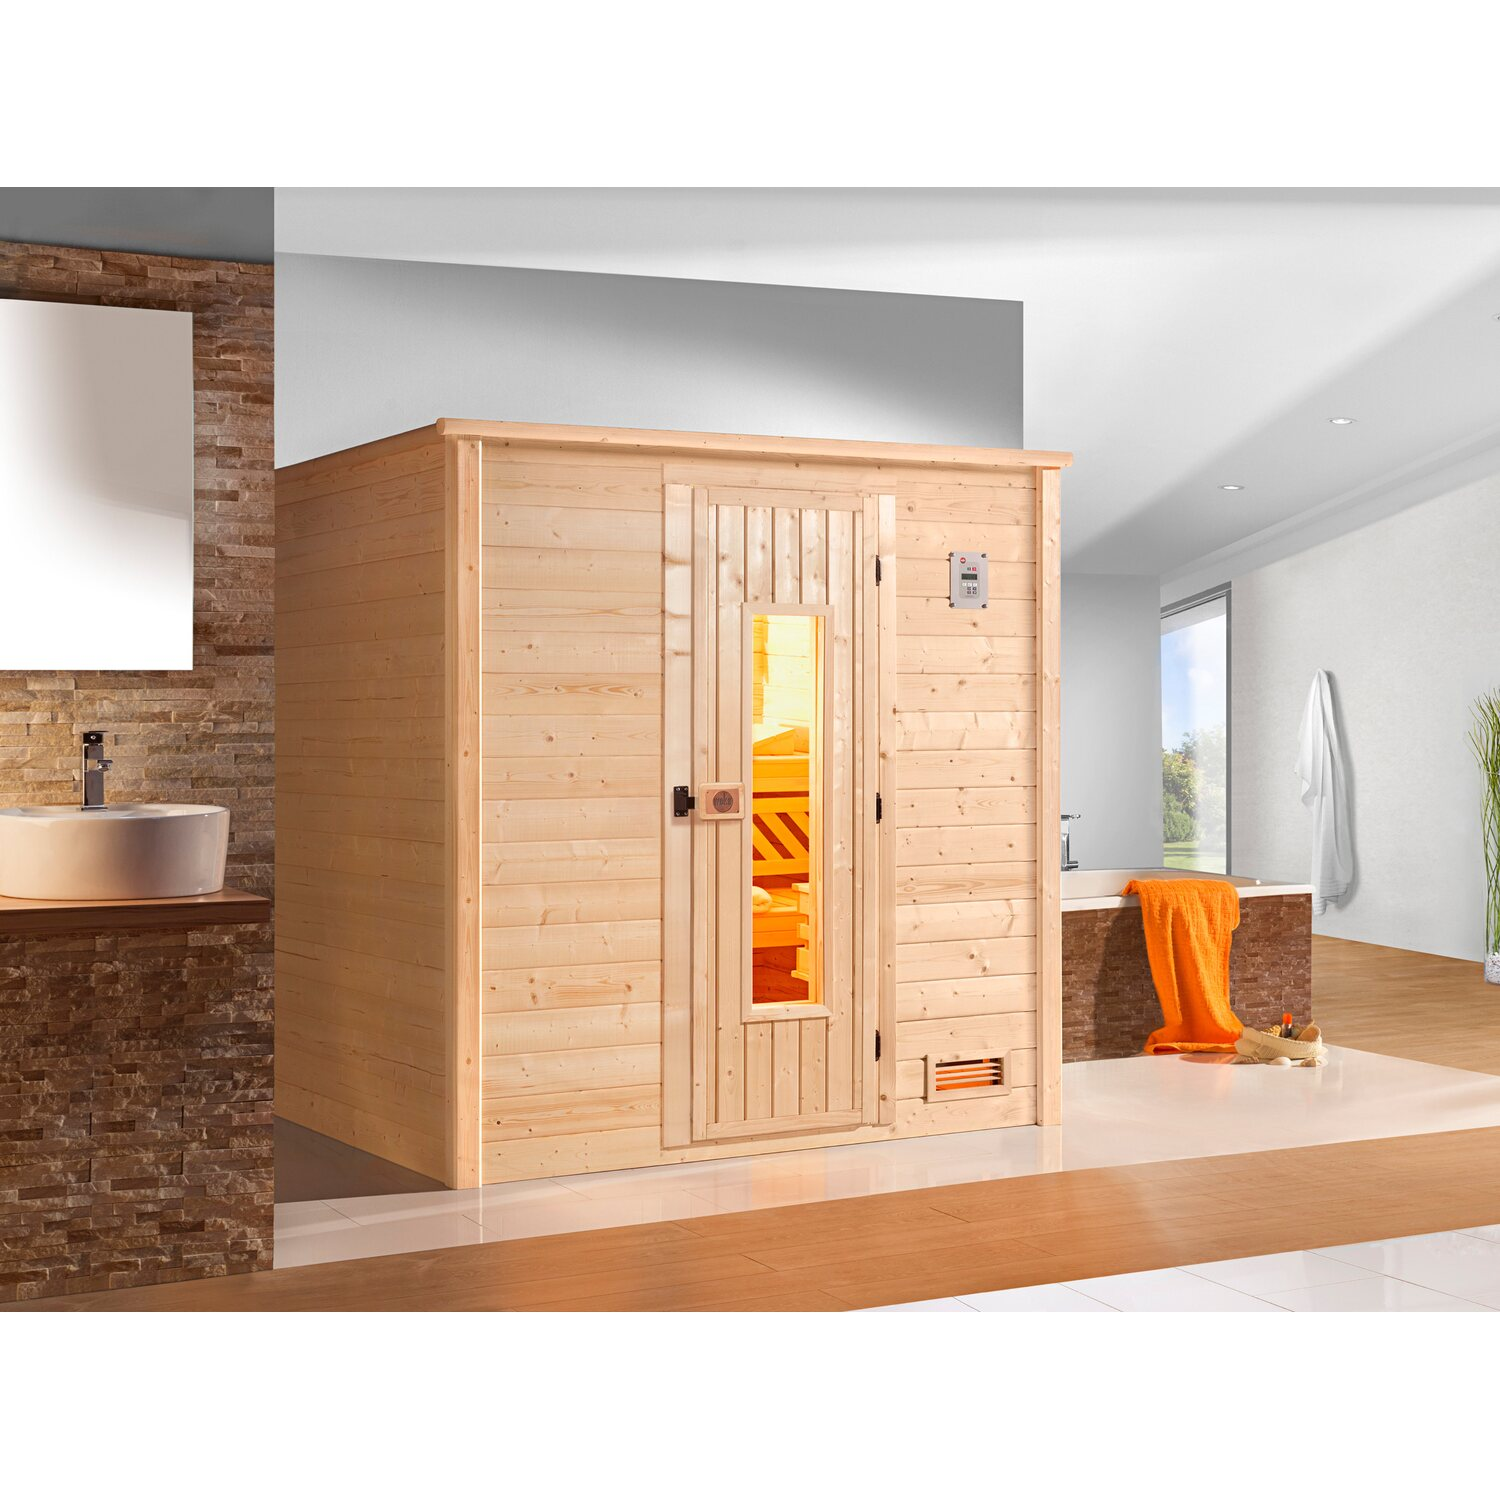 sauna mit ofen kaufen iq74 kyushucon. Black Bedroom Furniture Sets. Home Design Ideas